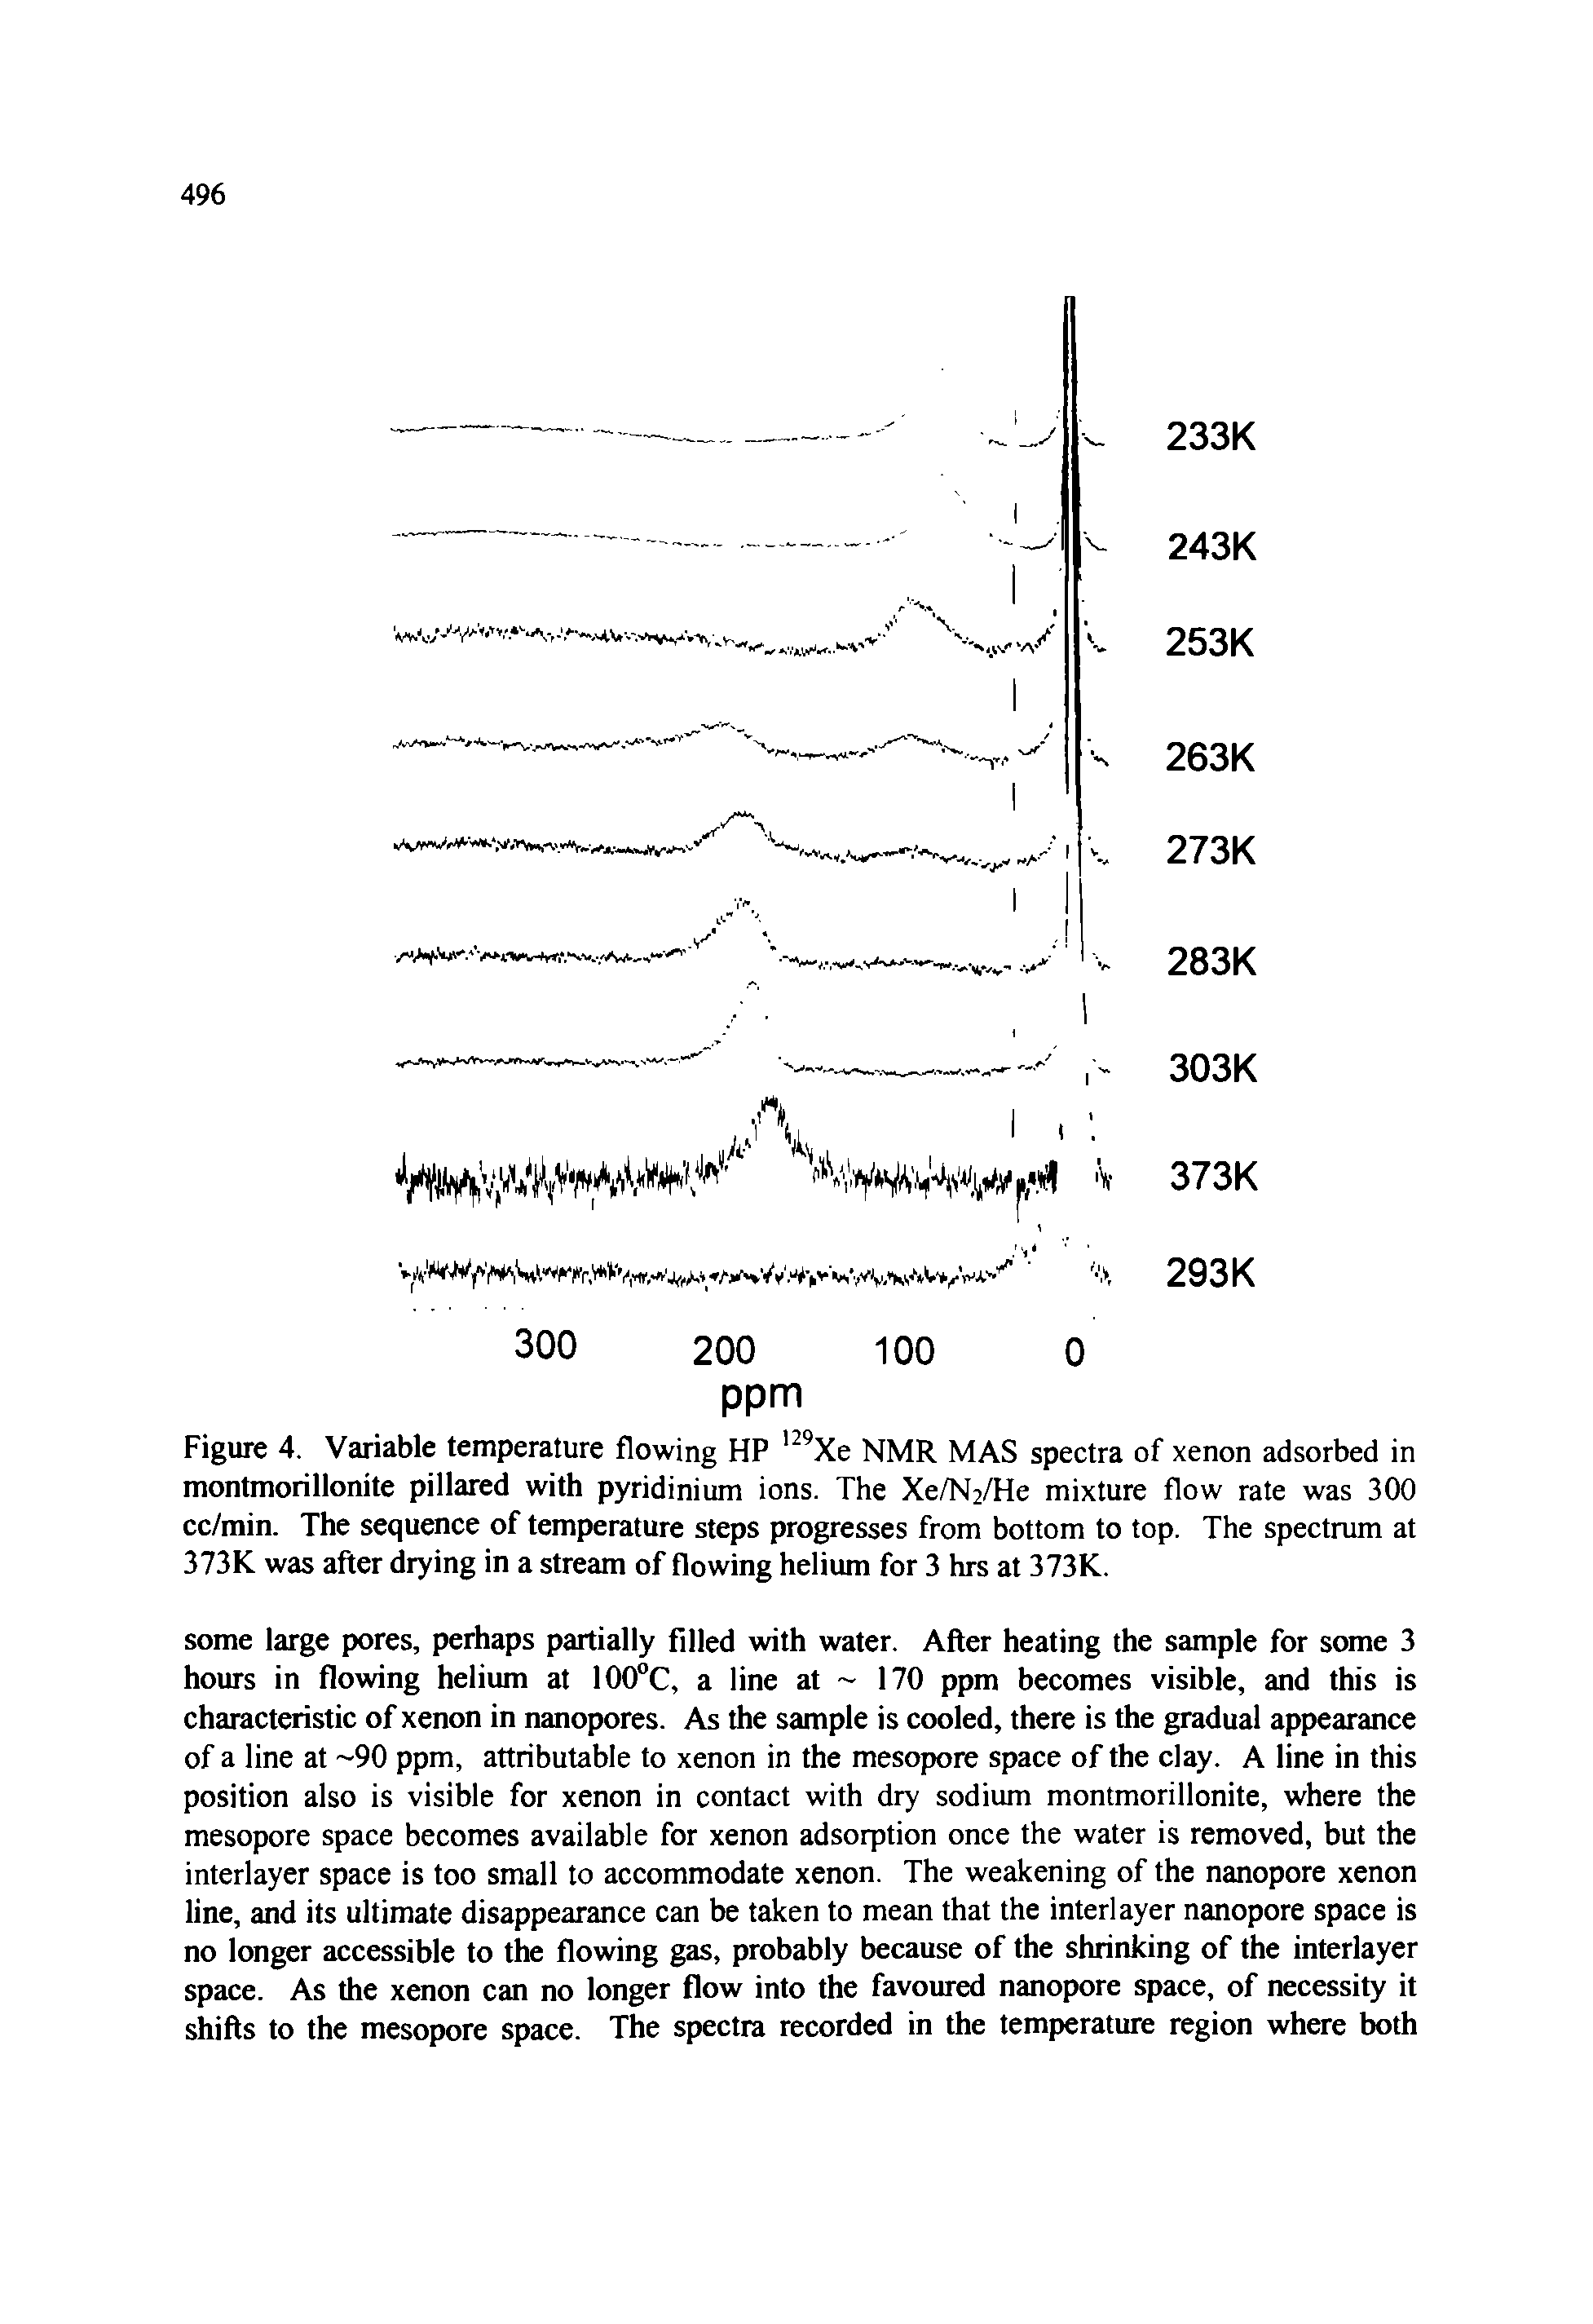 Figure 4. Variable temperature flowing HP 129Xe NMR MAS spectra of xenon adsorbed in montmorillonite pillared with pyridinium ions. The Xe/N2/He mixture flow rate was 300 cc/min. The sequence of temperature steps progresses from bottom to top. The spectrum at 373K was after drying in a stream of flowing helium for 3 hrs at 373K.